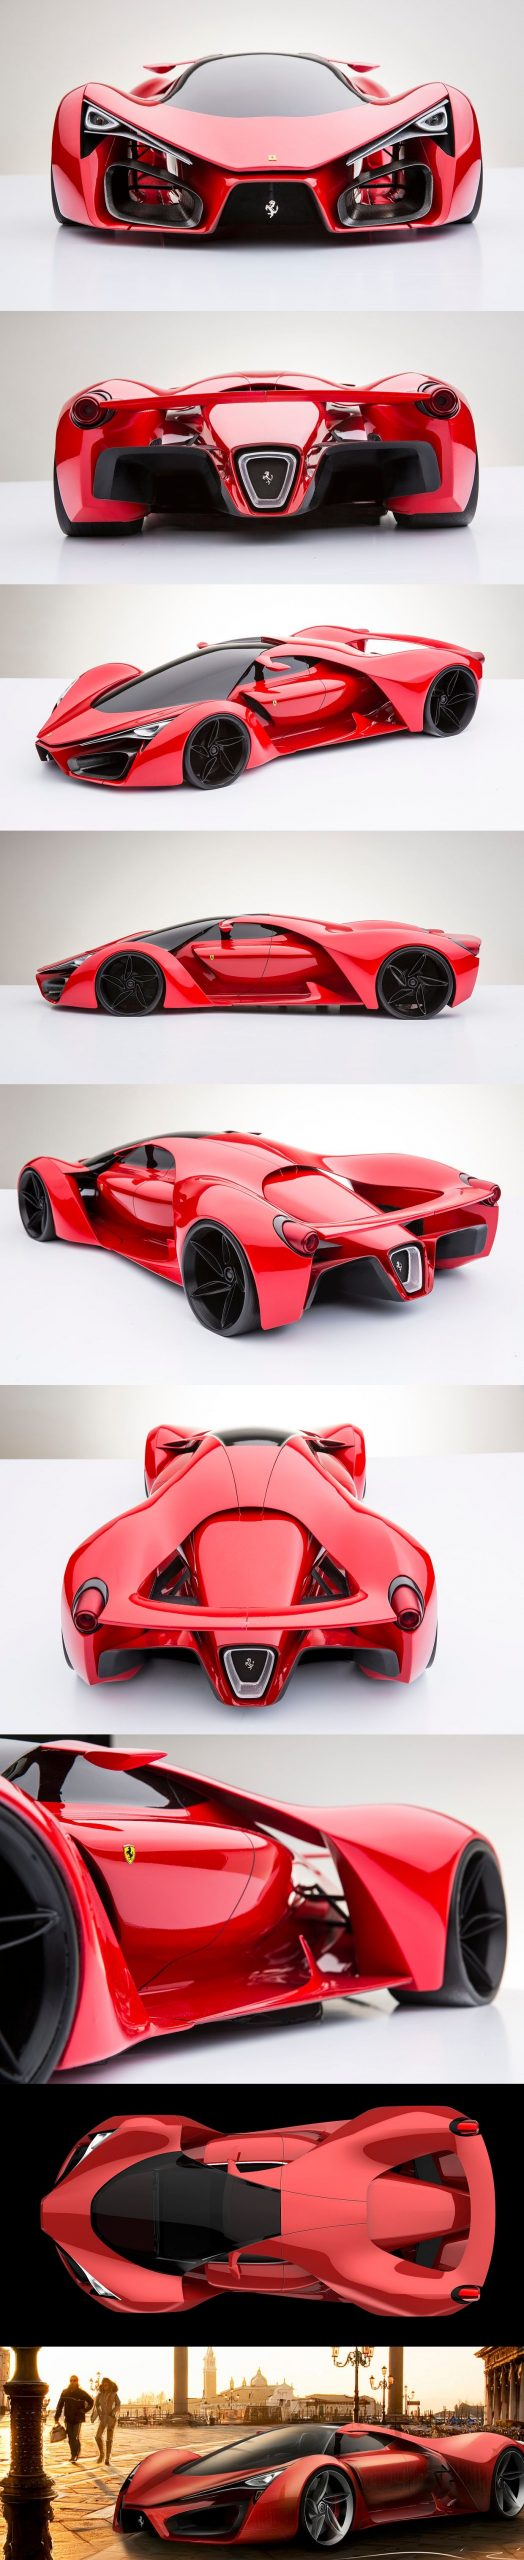 From car mechanic to Millionaire. BE ready Ferrari F80 Supercar Concept